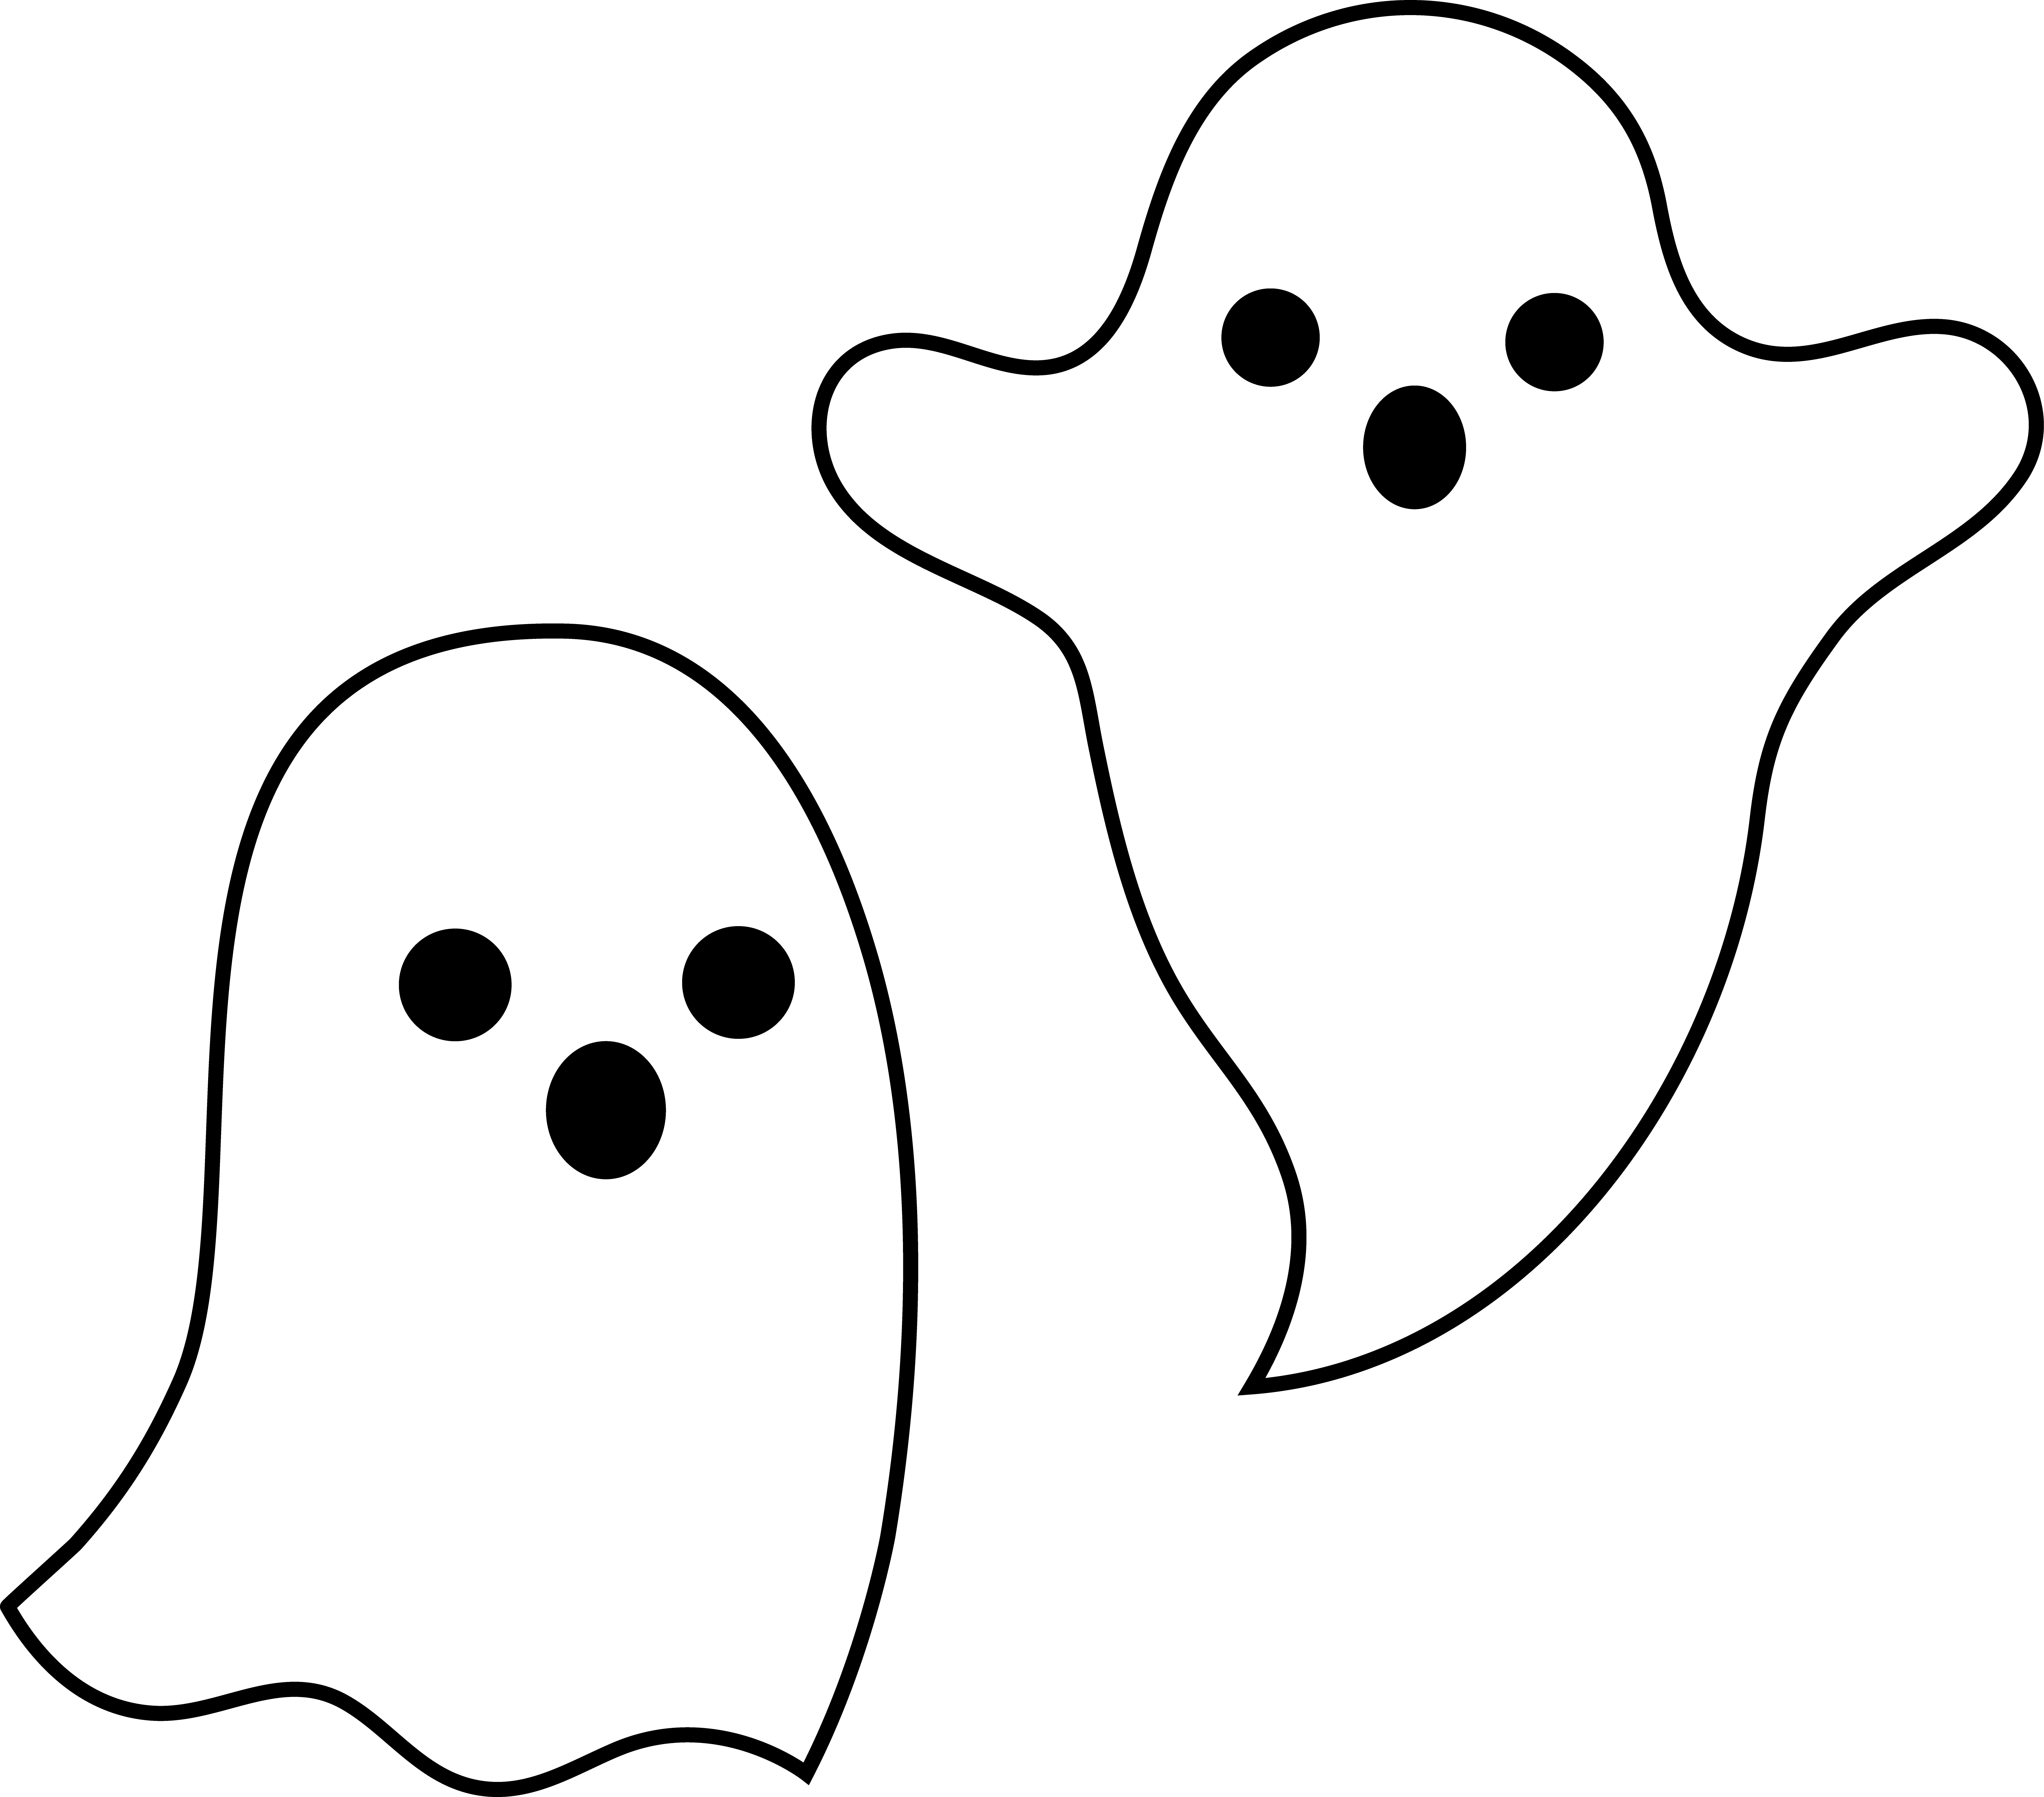 Cute Ghost Background Tumblr Ghost tumblr   viewing gallery 6766x5949